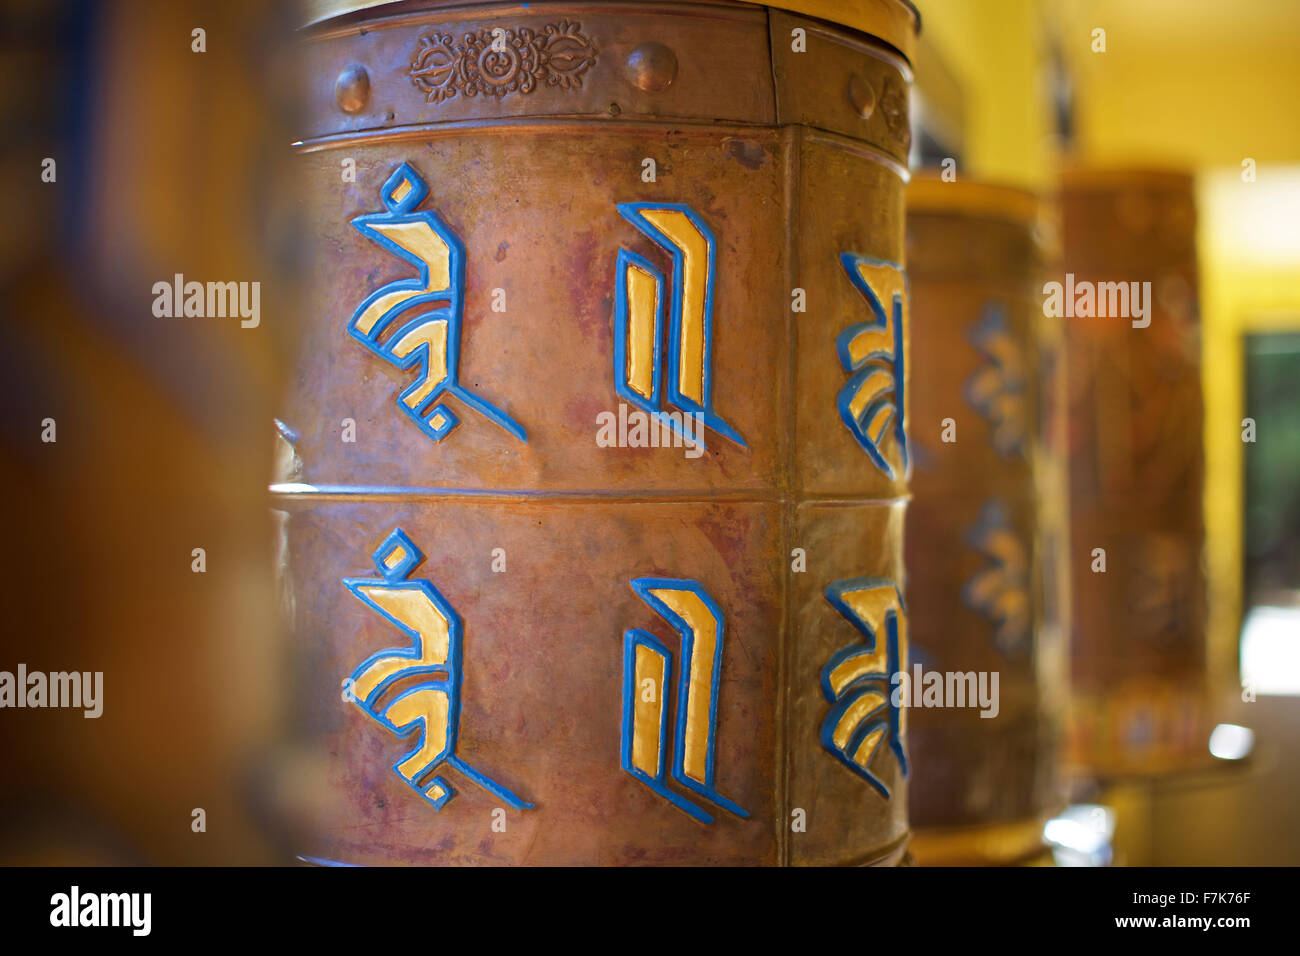 This photograph is of Buddhist prayer wheels at the Tibetan